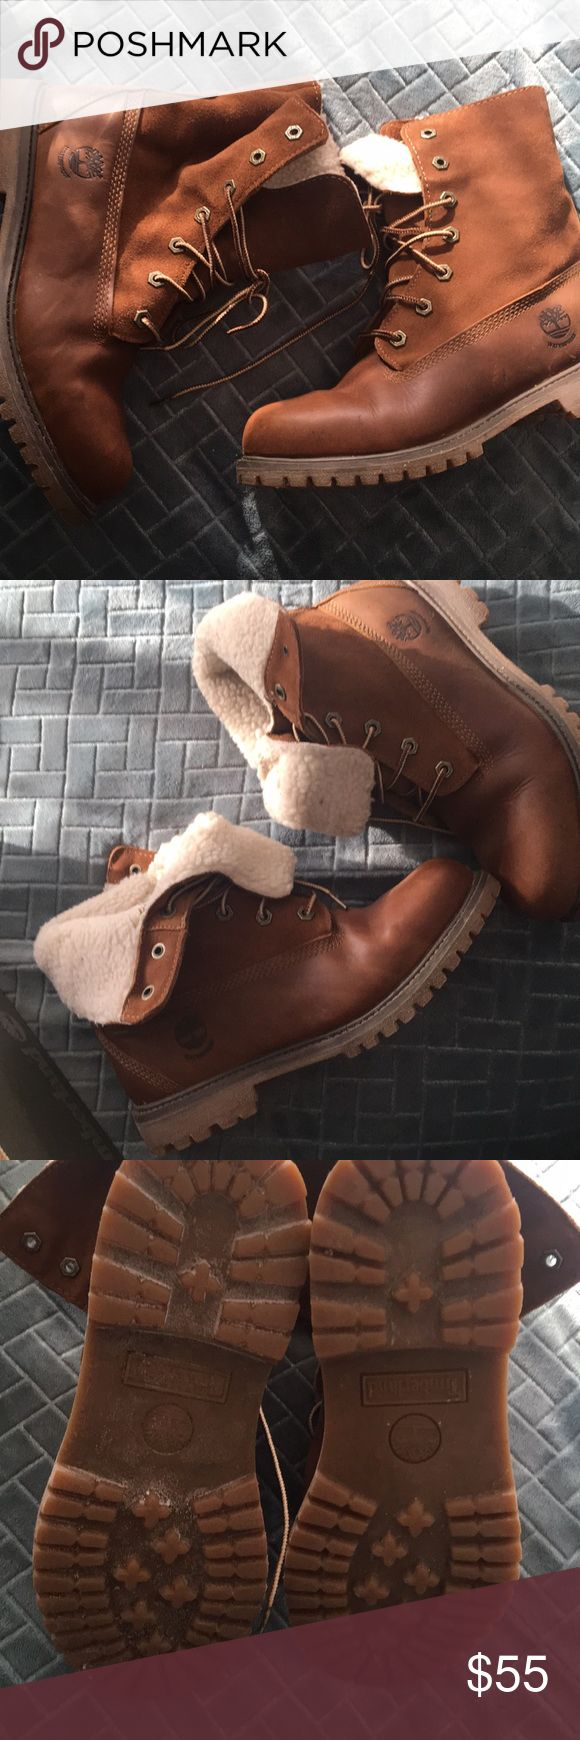 "Women's brown leather and wool timberlands Authentic Woman's Brown leather and wool, ""Teddy Fleece Fold down"" Timberlands boots . Can be worn folded down as pictured. The wool is also through out the inside of the shoe. Timberland Shoes Winter & Rain Boots"